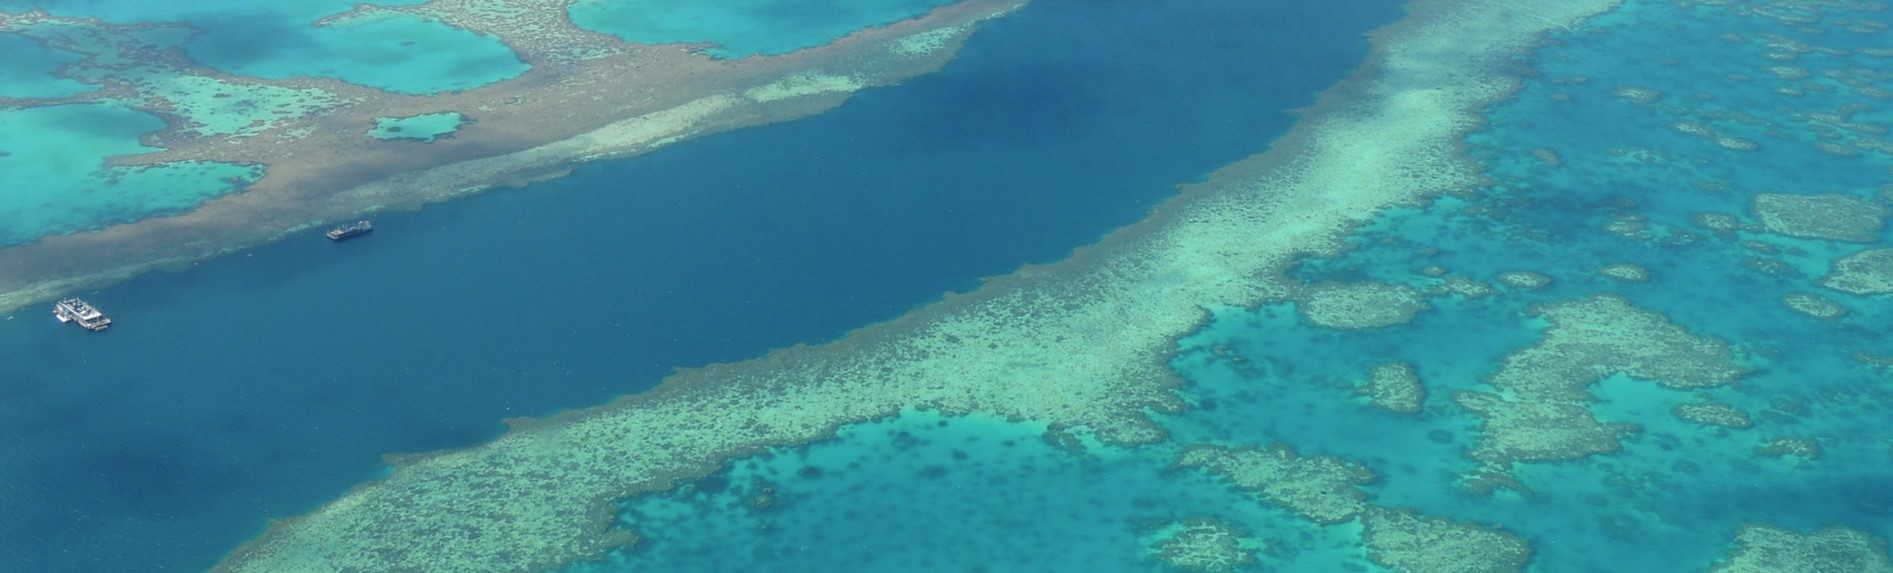 Great organisations saving the Great Barrier Reef!